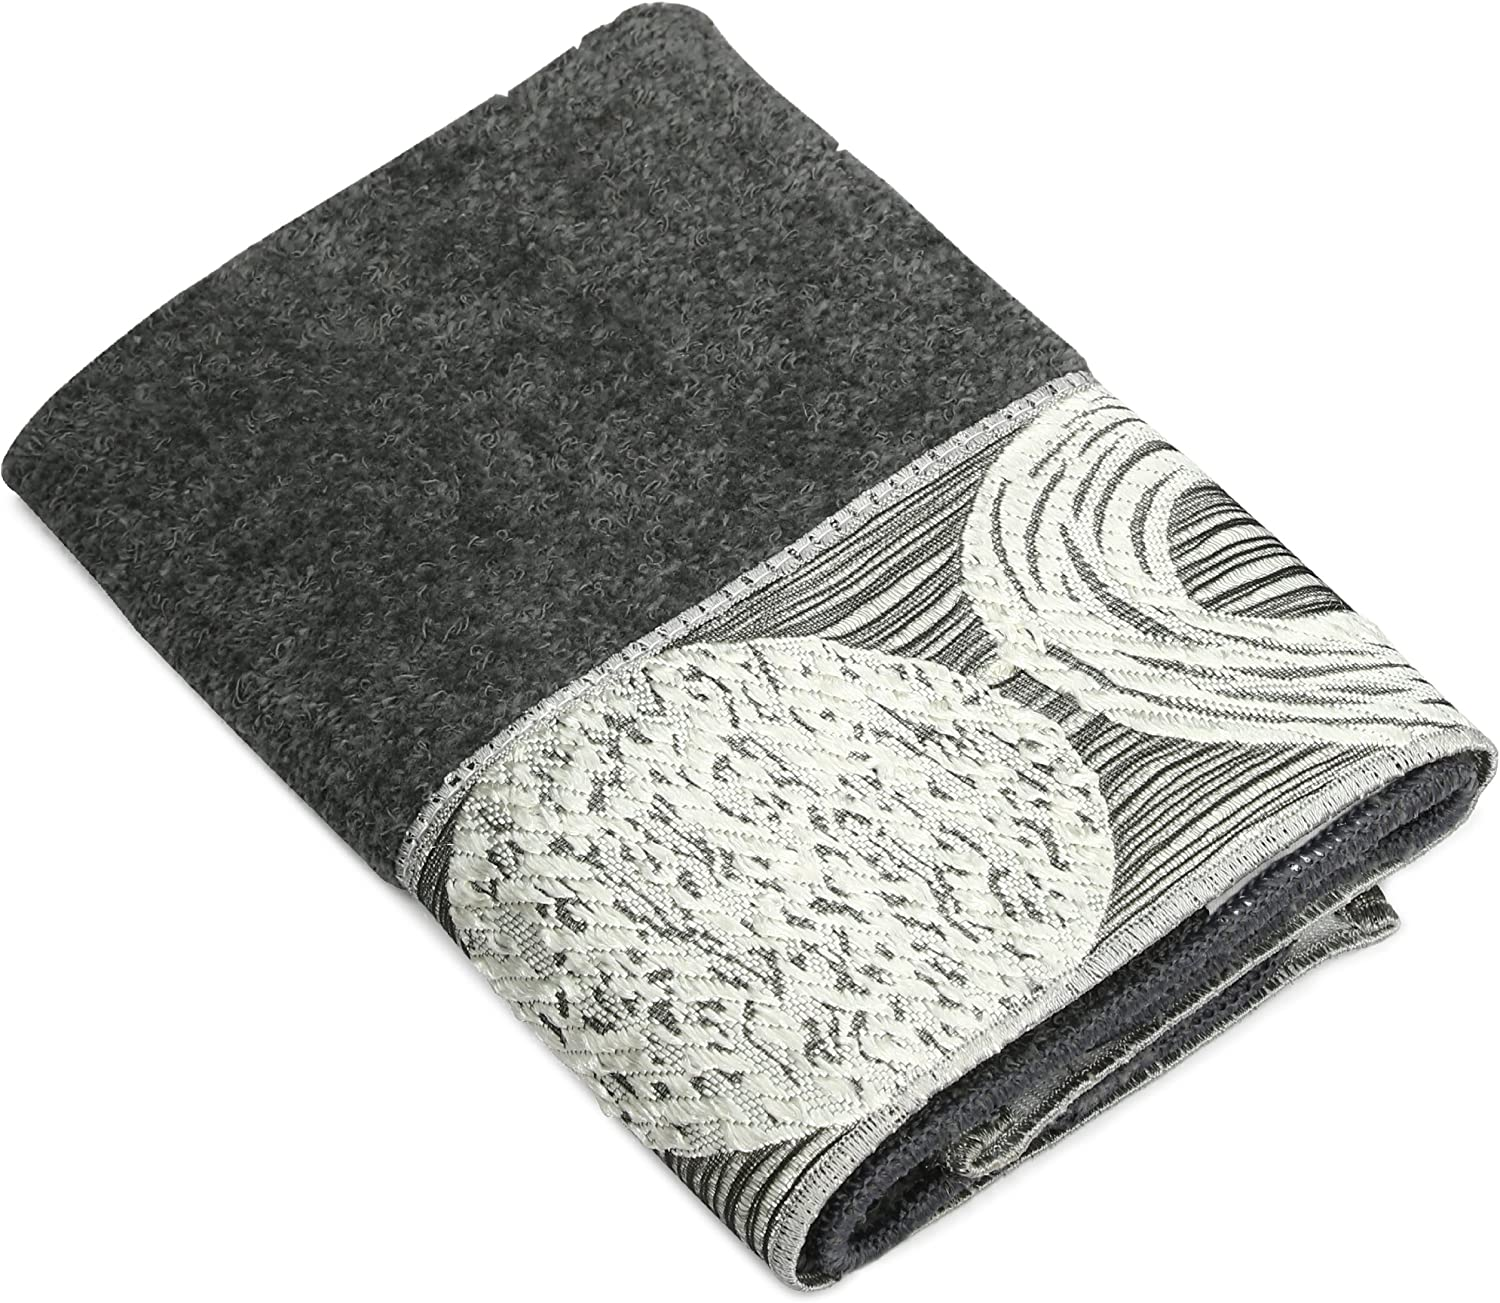 Avanti Linens Galaxy Wash Cloth, Granite